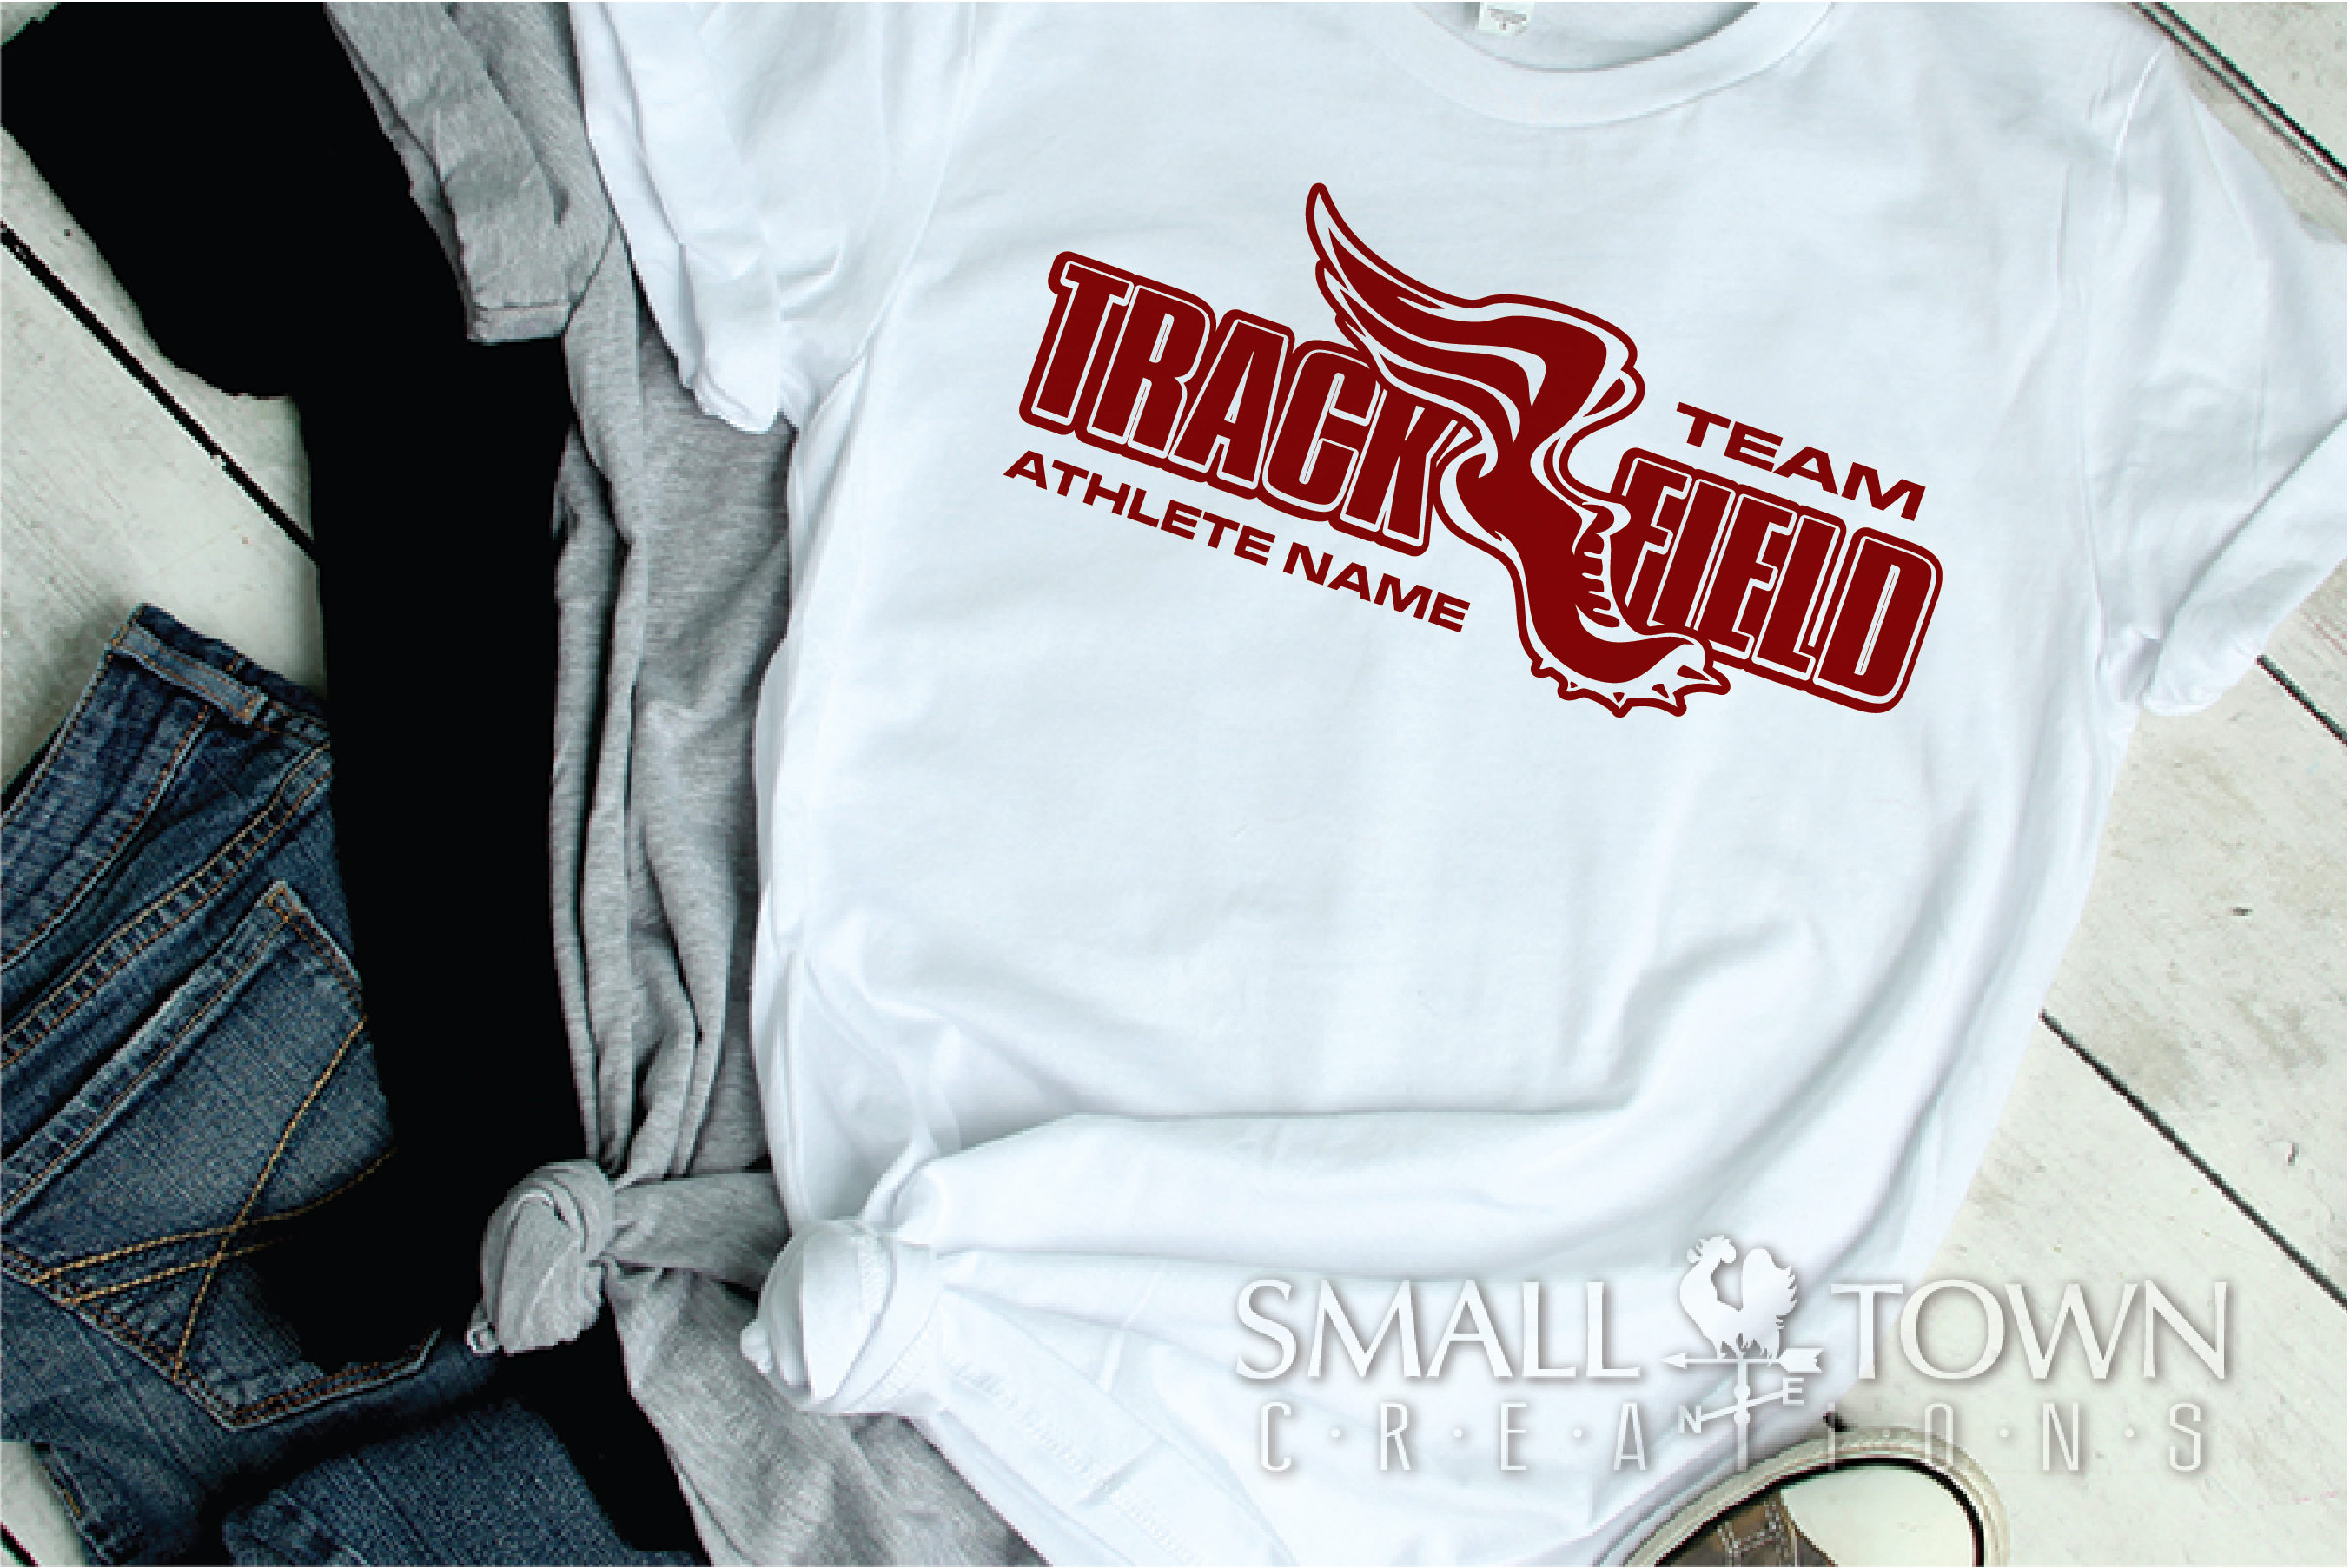 Track and Field, Team logo, Winged shoe, PRINT, CUT & DESIGN example image 2